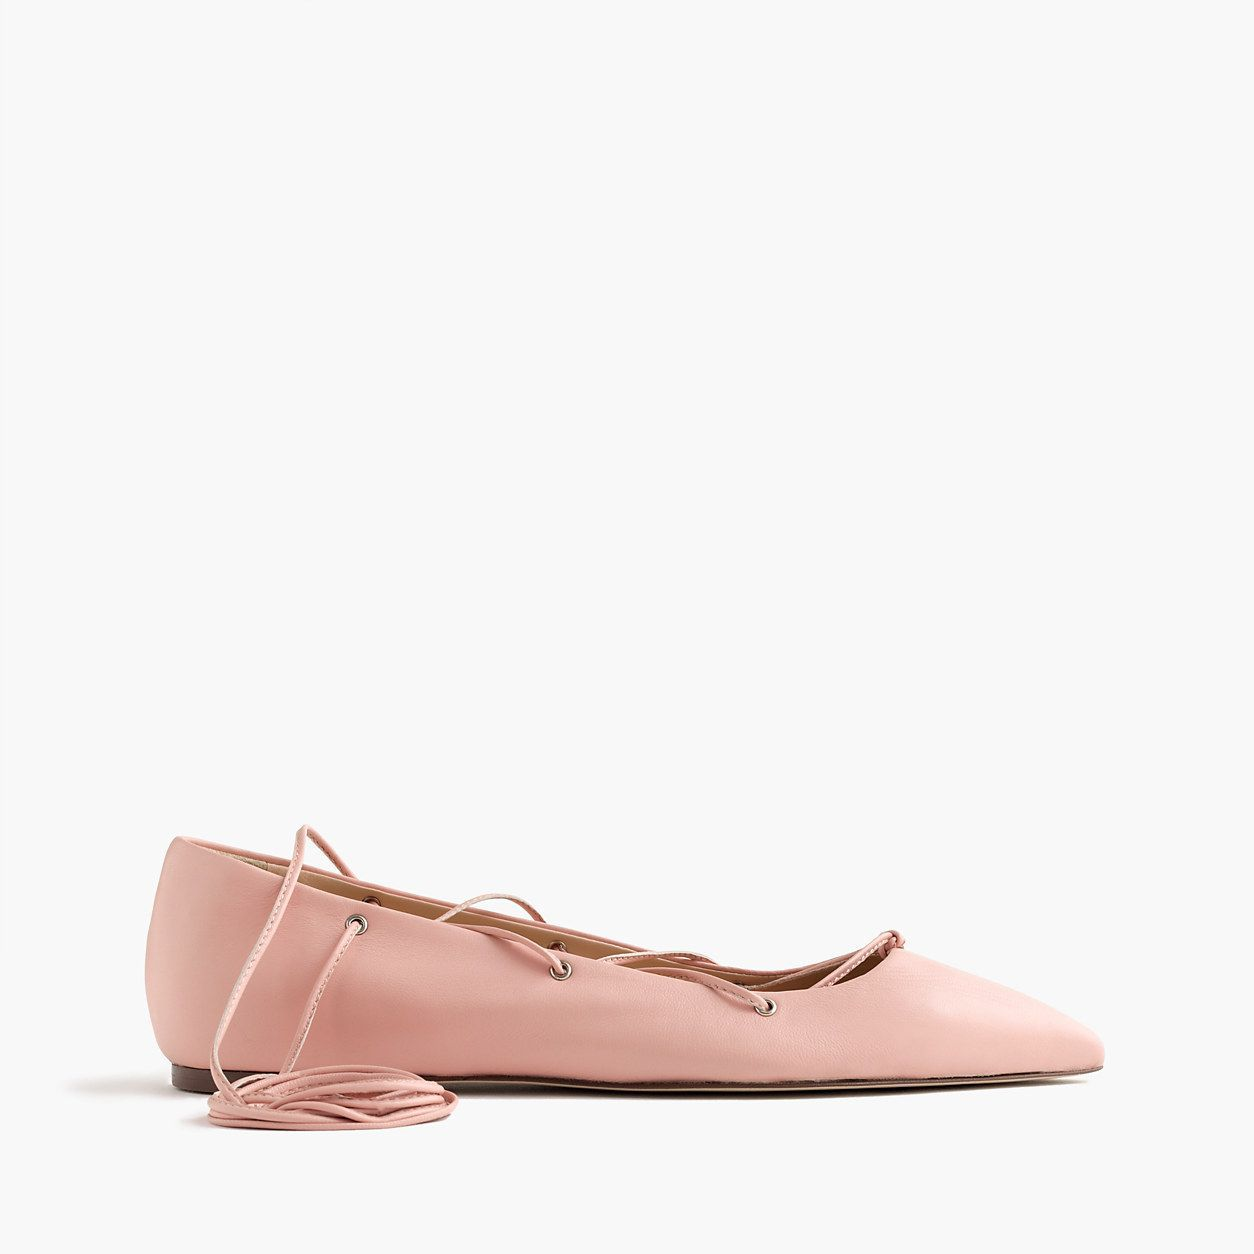 J.Crew Womens Leather Lace-Up Ballet Flats (Size 6 M)